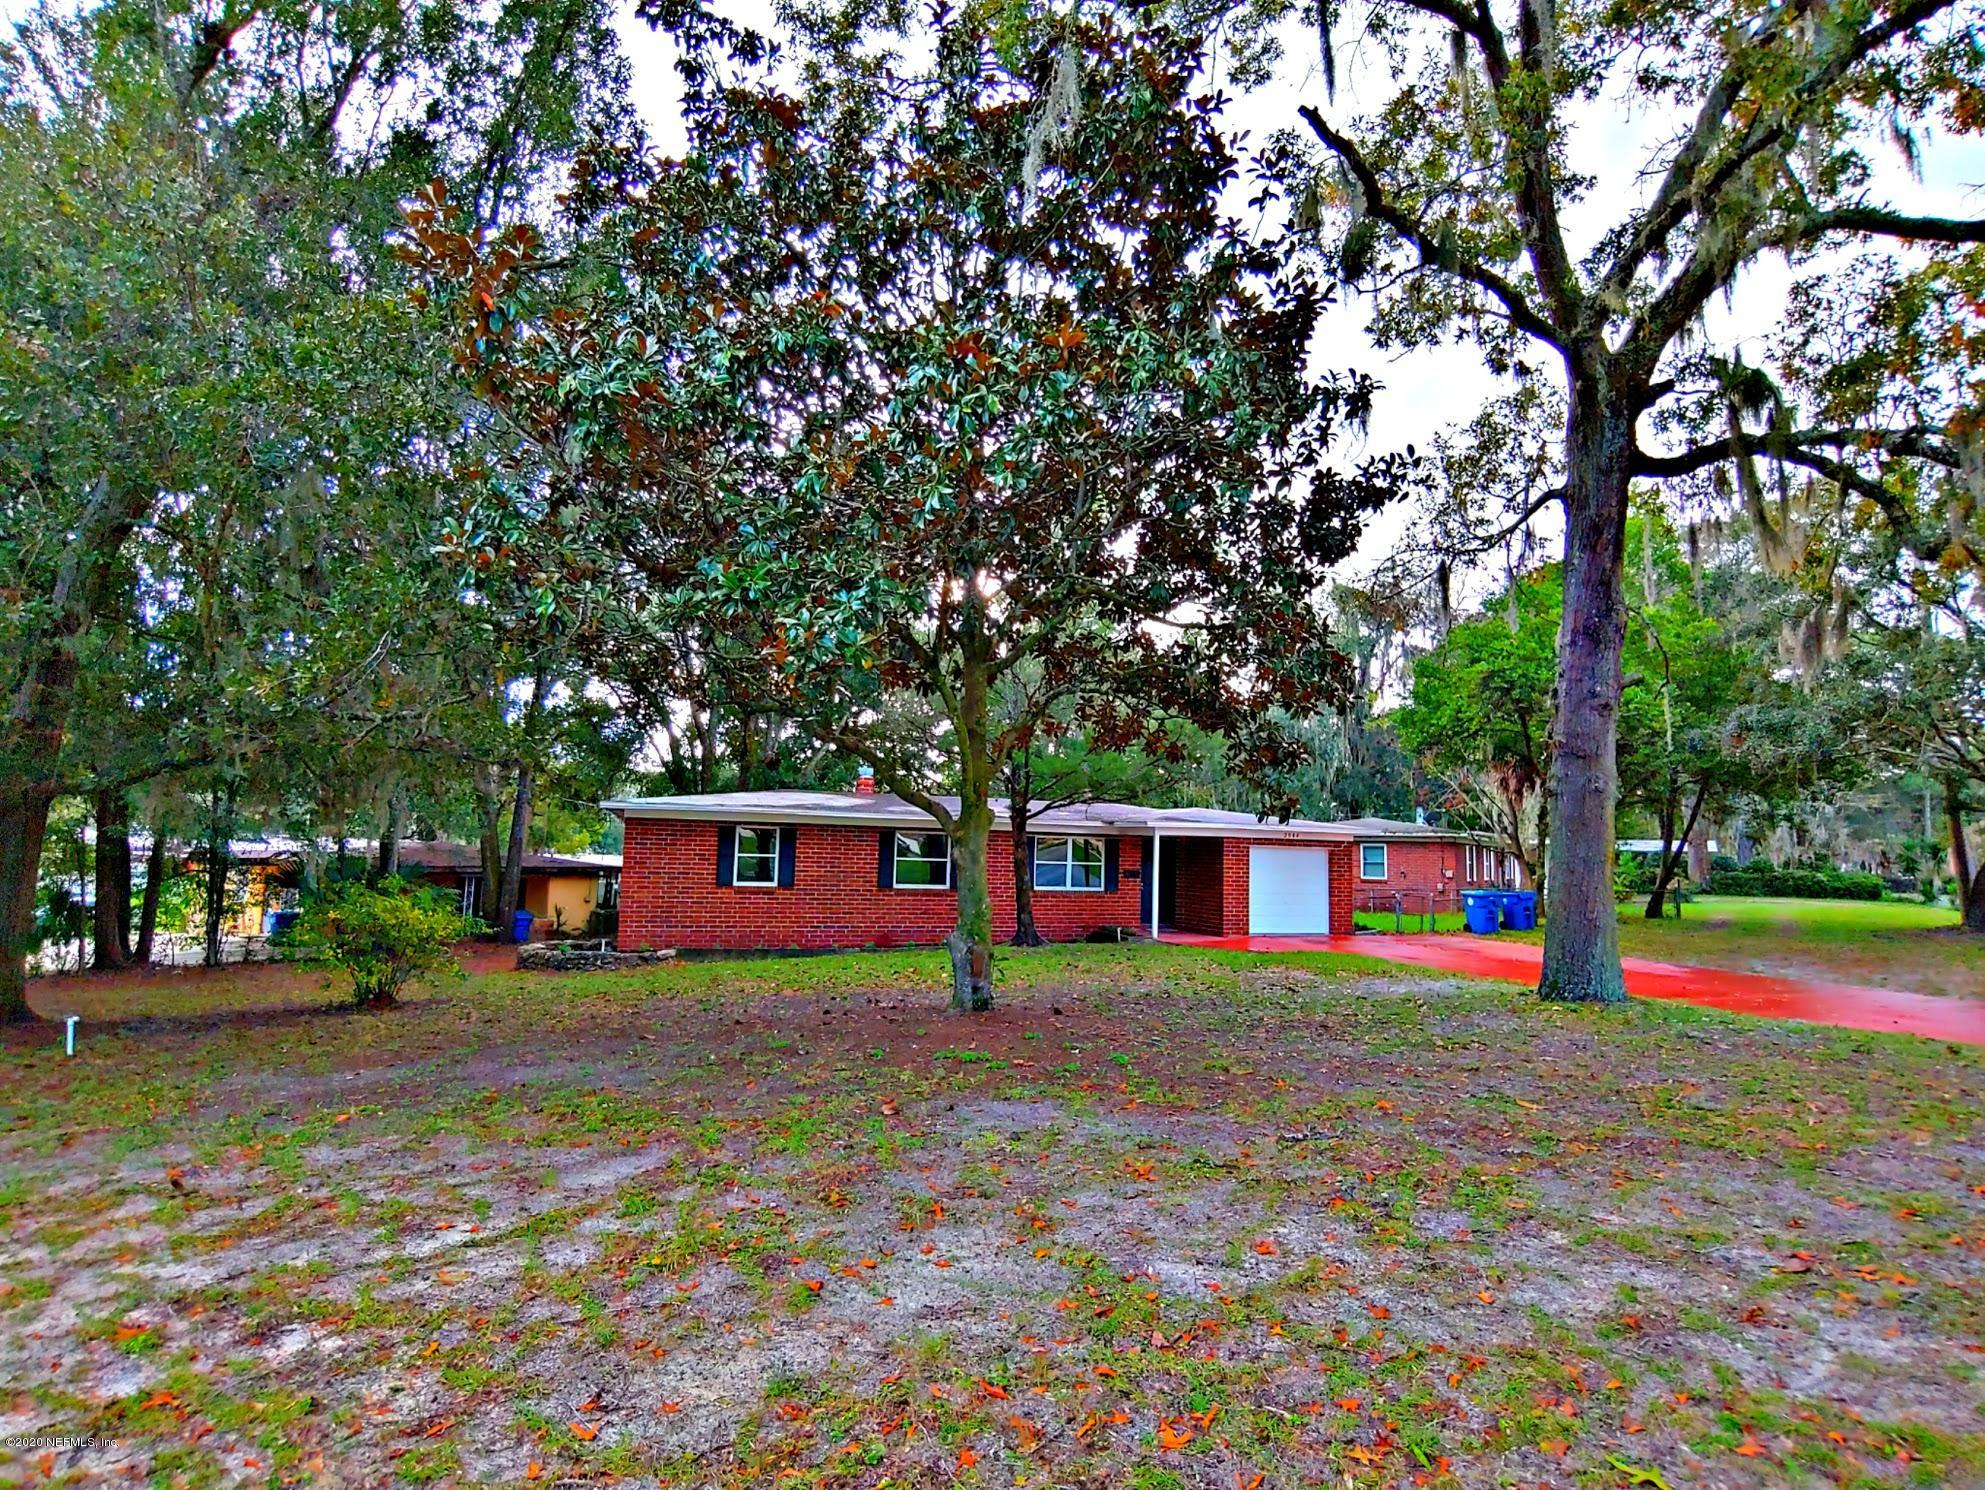 2044 CESERY, JACKSONVILLE, FLORIDA 32211, 3 Bedrooms Bedrooms, ,1 BathroomBathrooms,Residential,For sale,CESERY,1082930